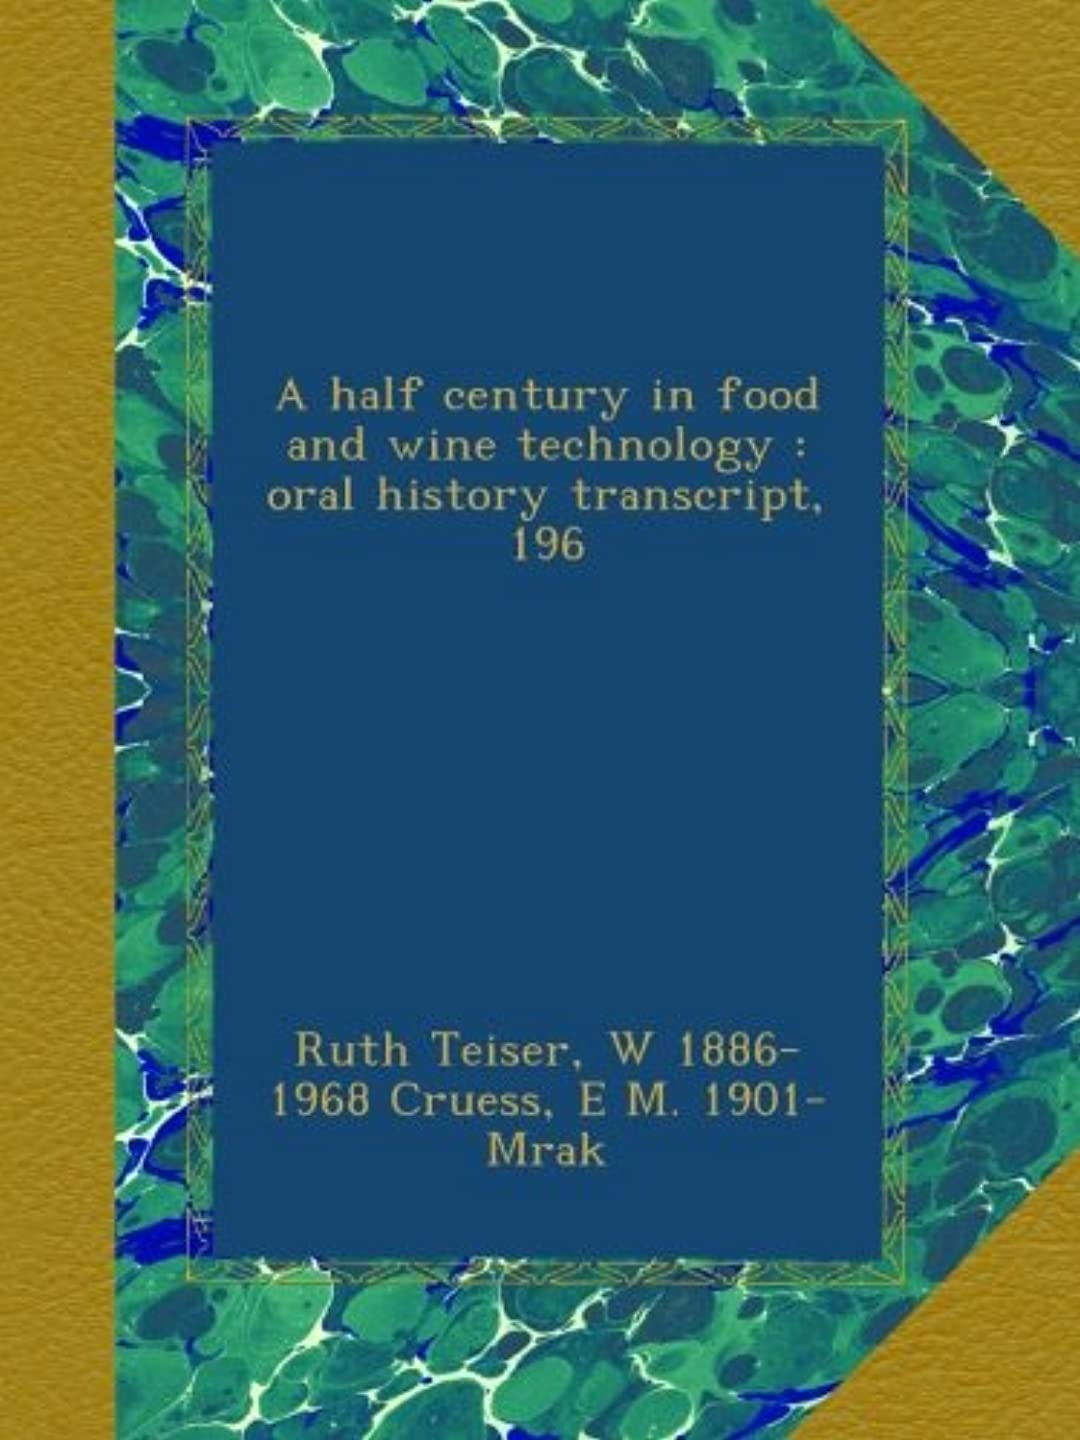 エクスタシーアミューズメント不均一A half century in food and wine technology : oral history transcript, 196